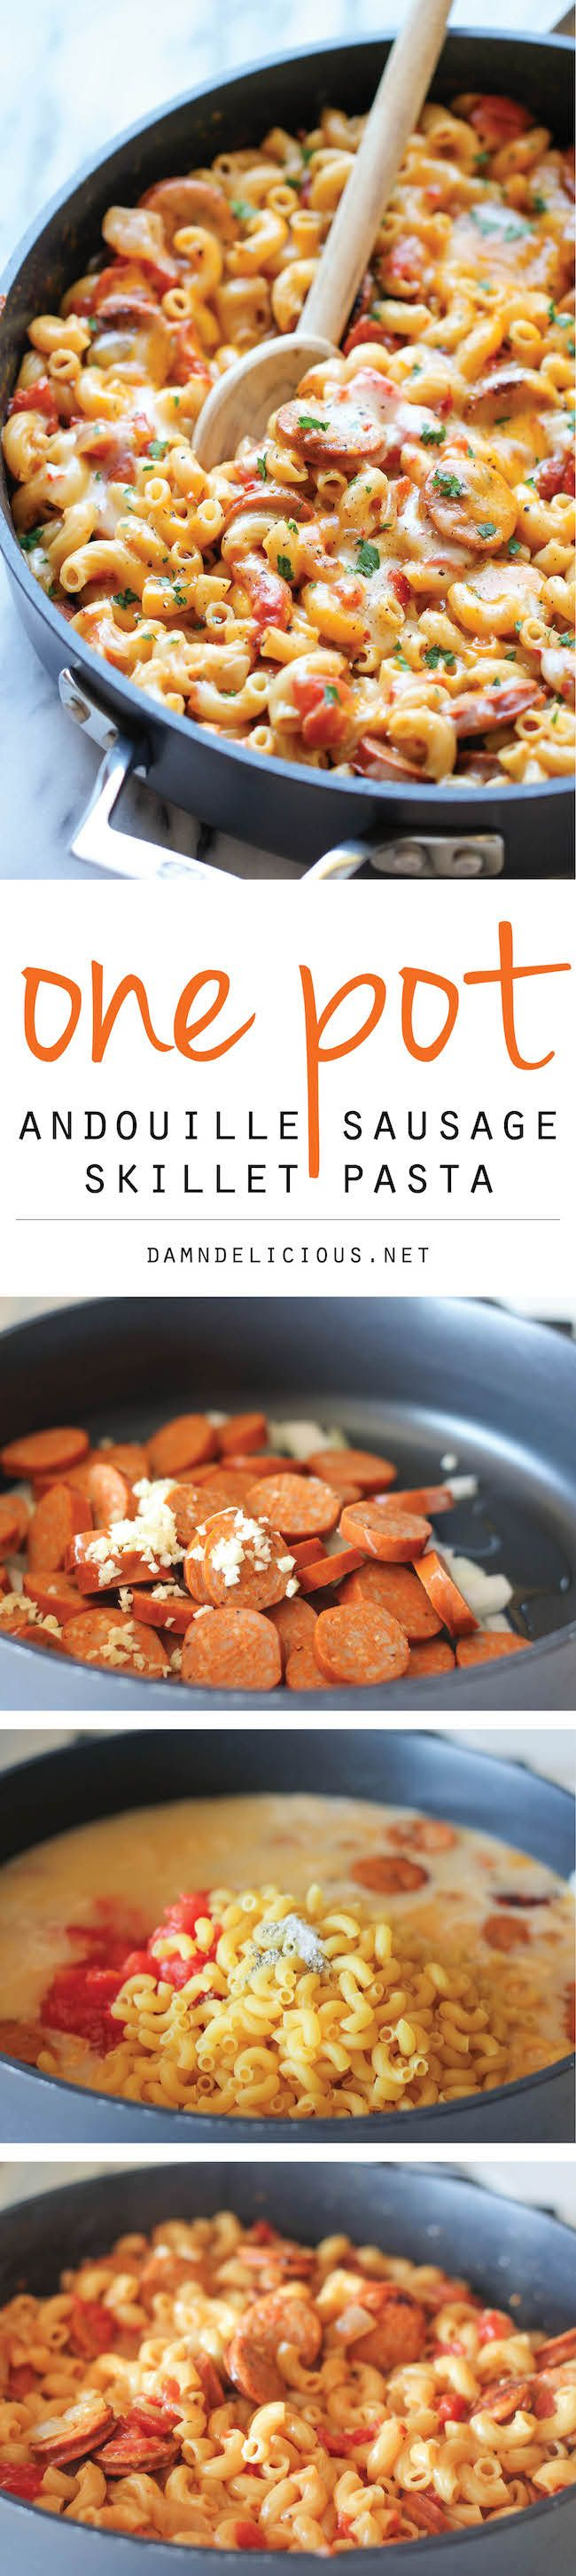 One Pot Andouille Sausage Skillet Pasta  http://damndelicious.net/2013/12/09/one-pot-andouille-sausage-skillet-pasta/